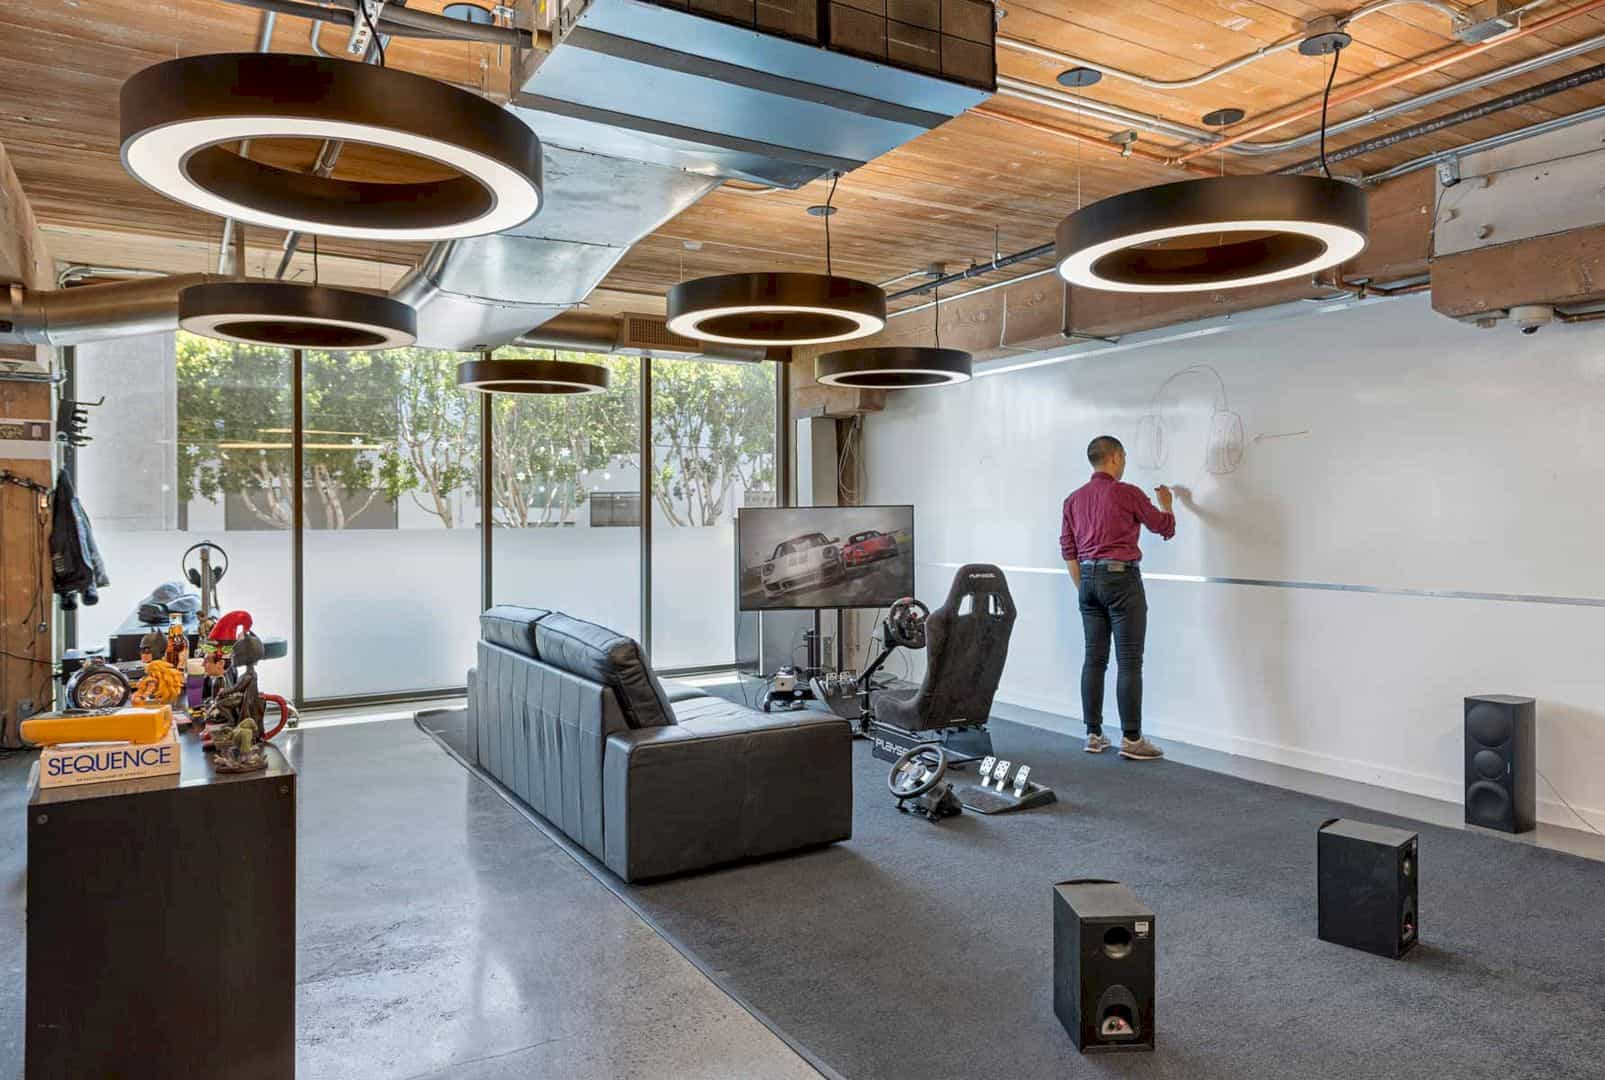 Astro Gaming: Industrial Interior Design for Tenants of A Leading Gaming Company